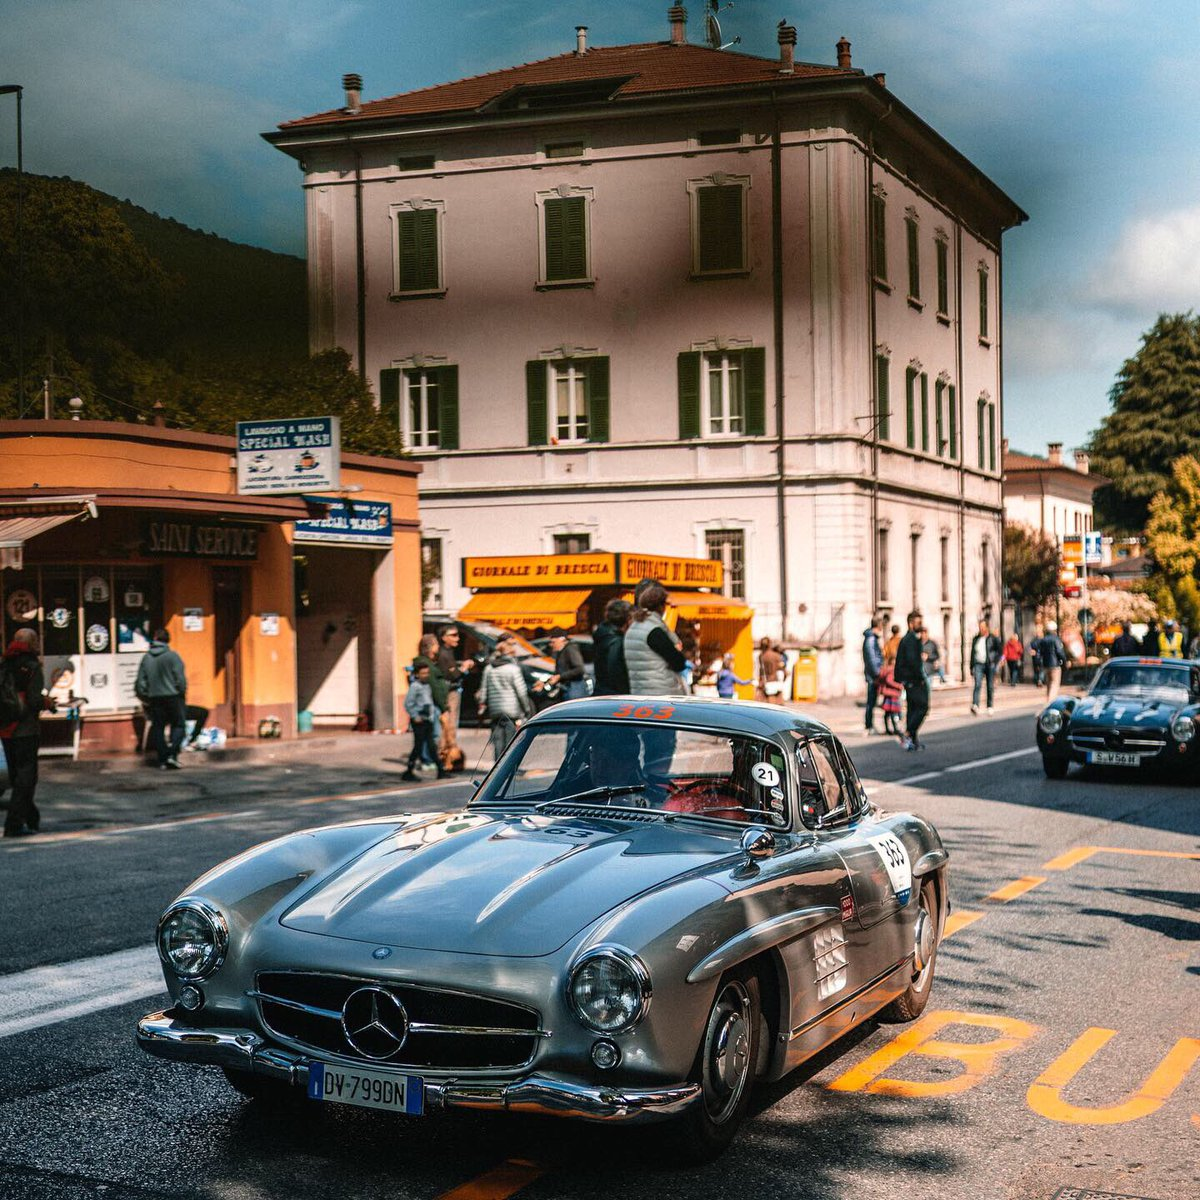 After an incredible 4 days of adventure, emotions and Italian lifestyle, the 2019 Mille Miglia comes to an end. The 8 Mercedes 300 SL finished the rally and all drivers go home with memories that will last a lifetime. Grazie & see you next year! 🙌 #MBmille #MBclassic @MB_Museum